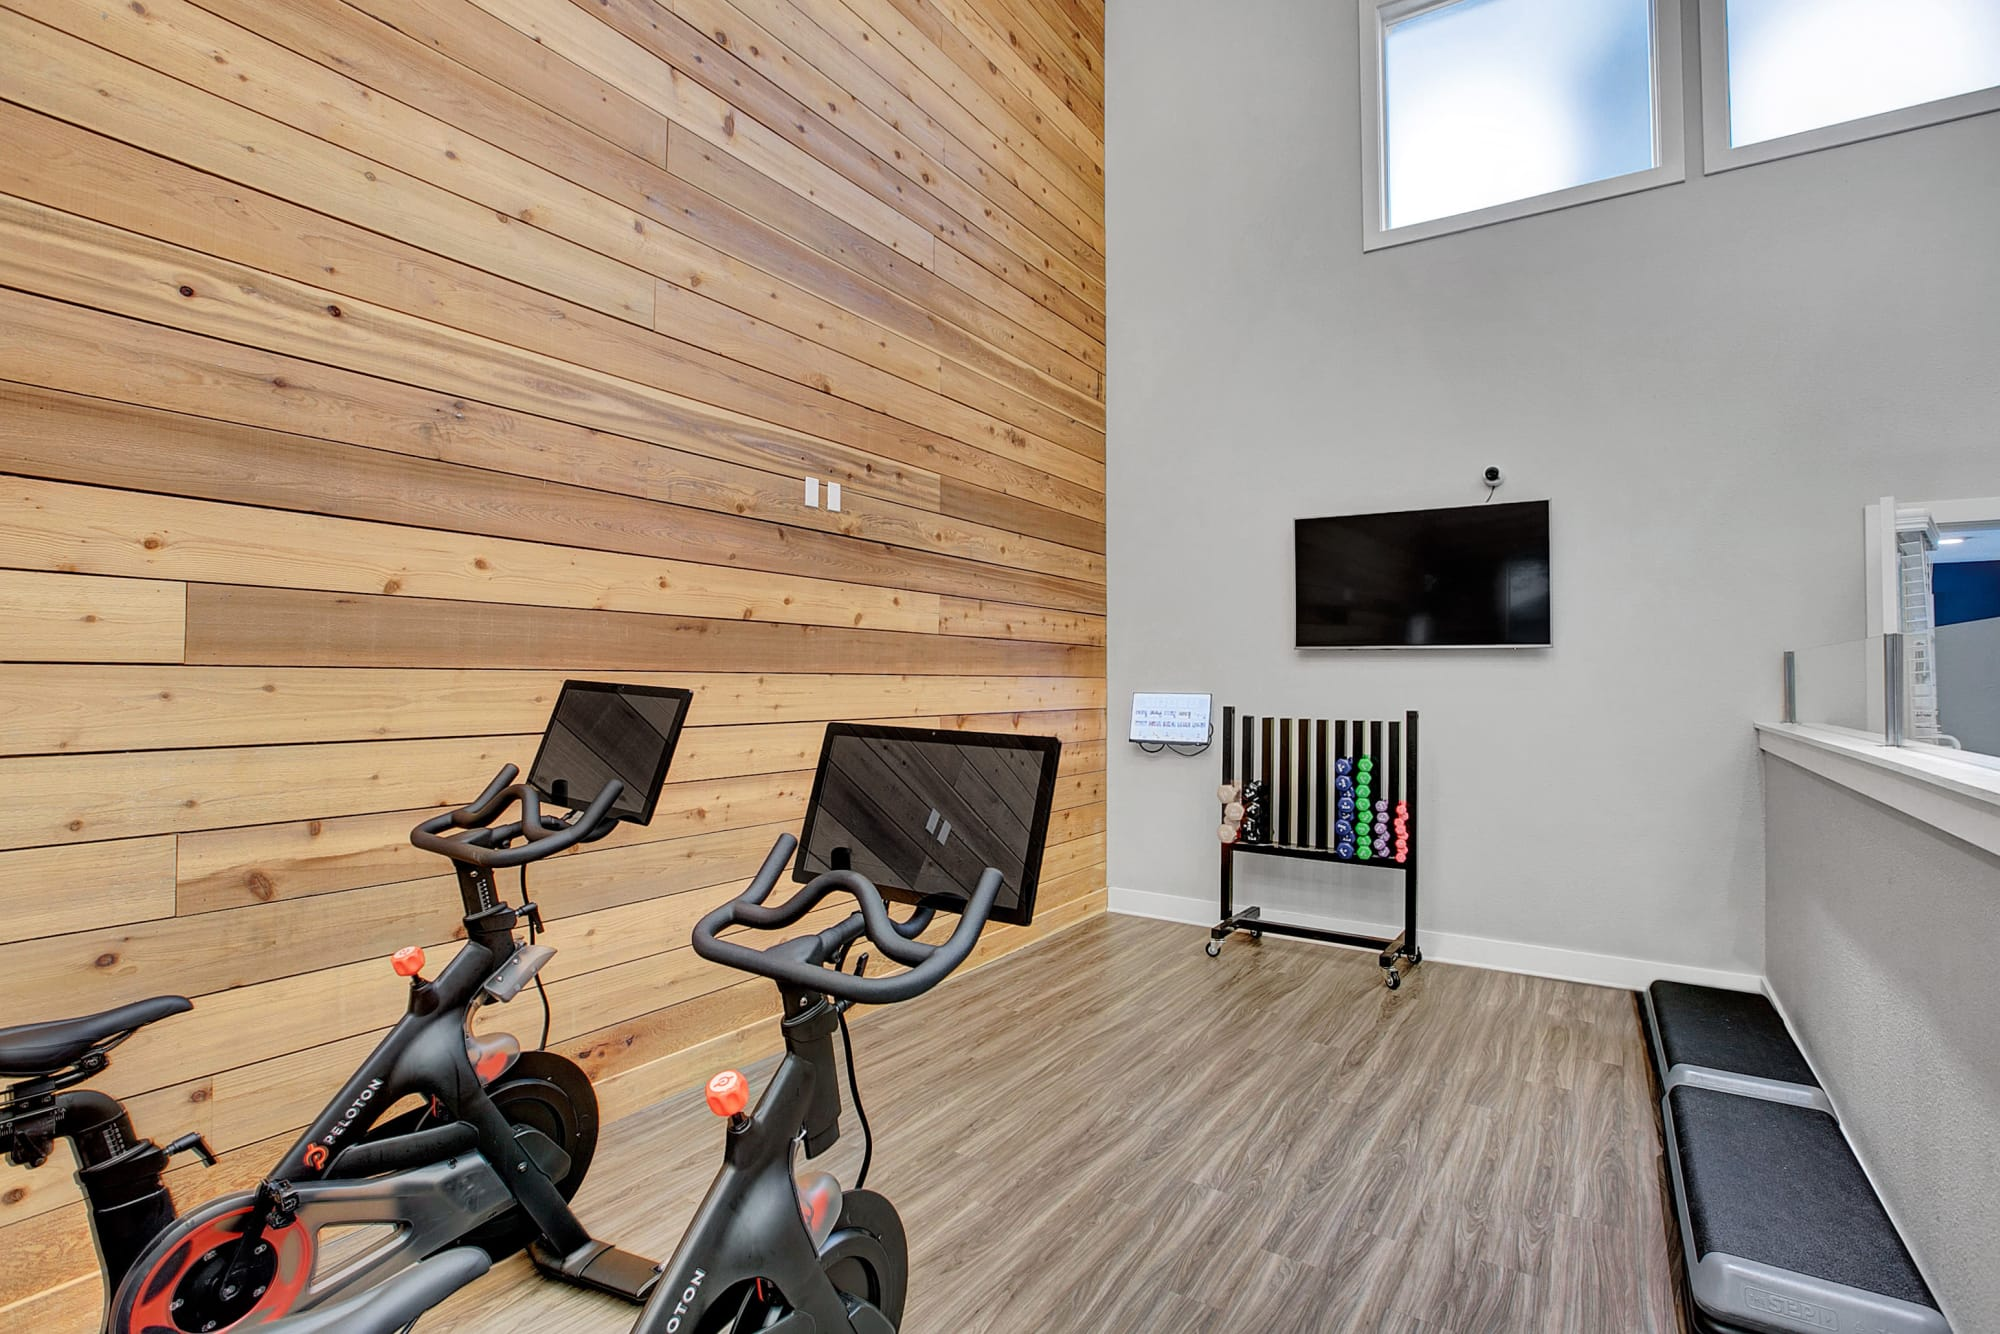 Fitness Center With A variety Of Equipment At Waters Edge Apartments